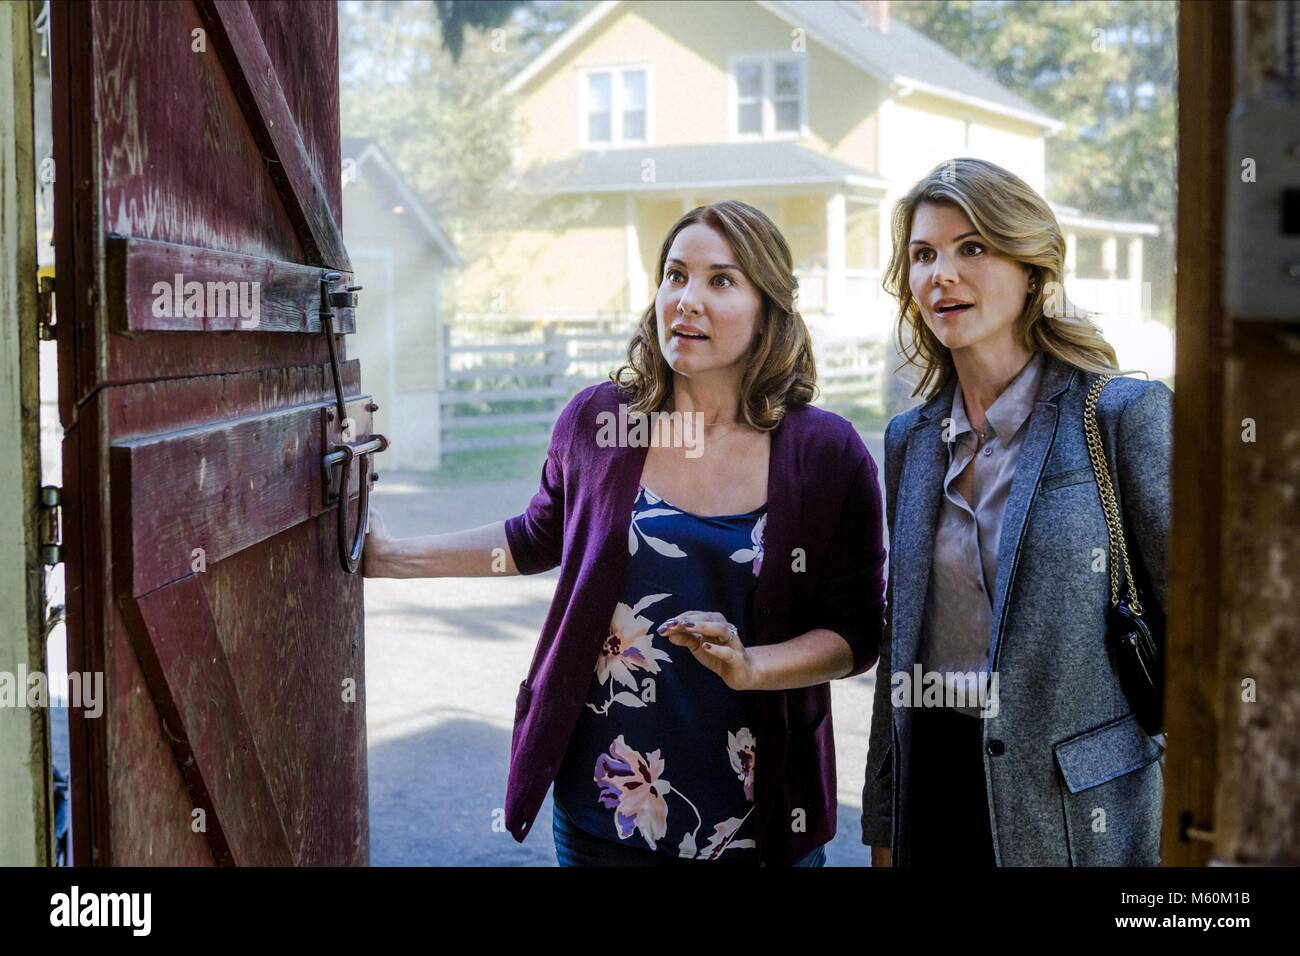 LORI LOUGHLIN GARAGE SALE MYSTERY: GUILTY UNTIL PROVEN INNOCENT (2016) - Stock Image